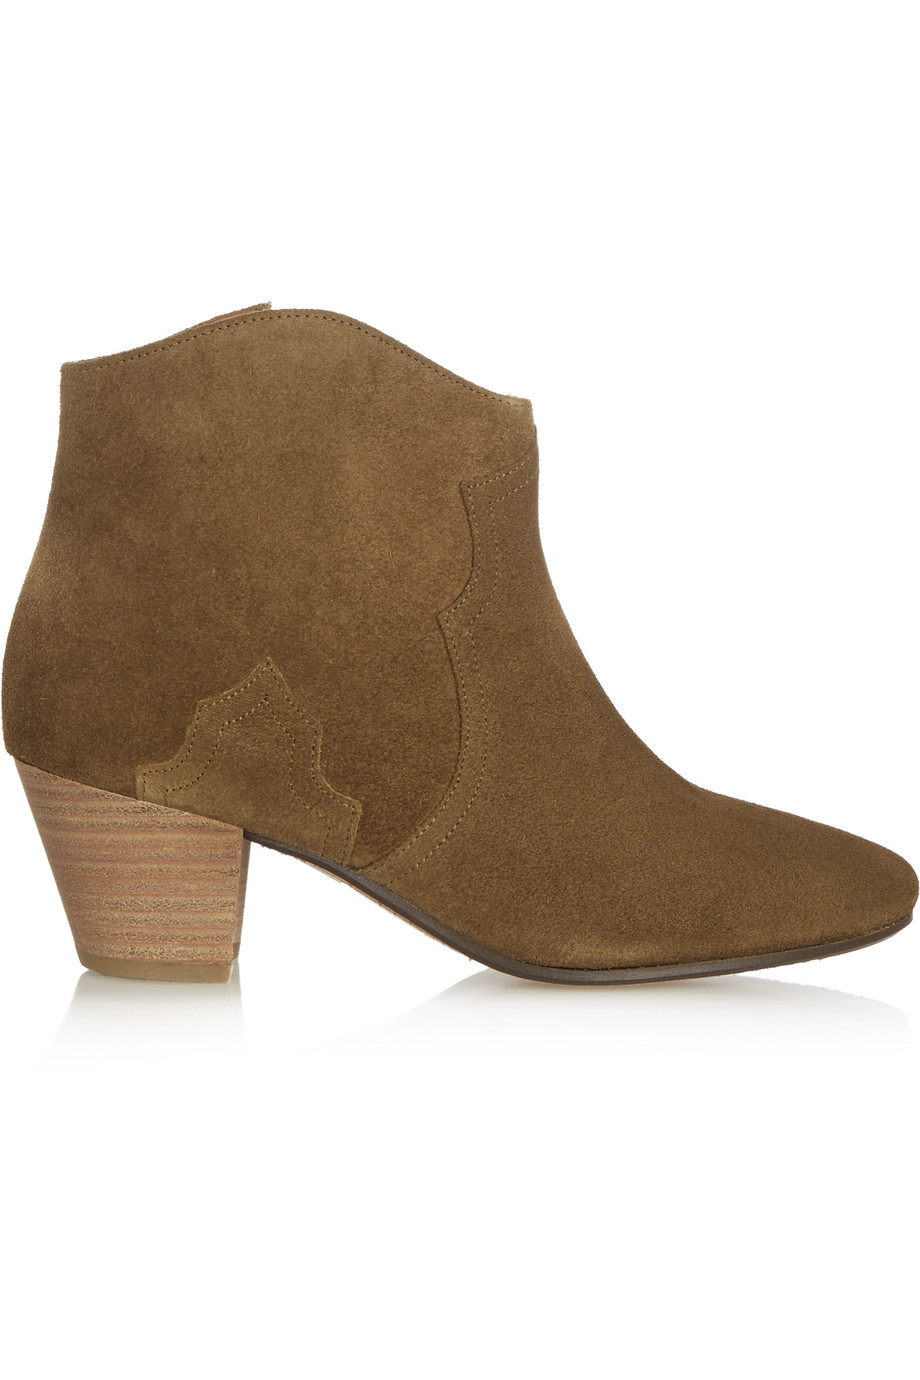 Isabel Marant Étoile The Dicker Suede Ankle Boots, Brown, Women's US Size: 4.5, Size: 36